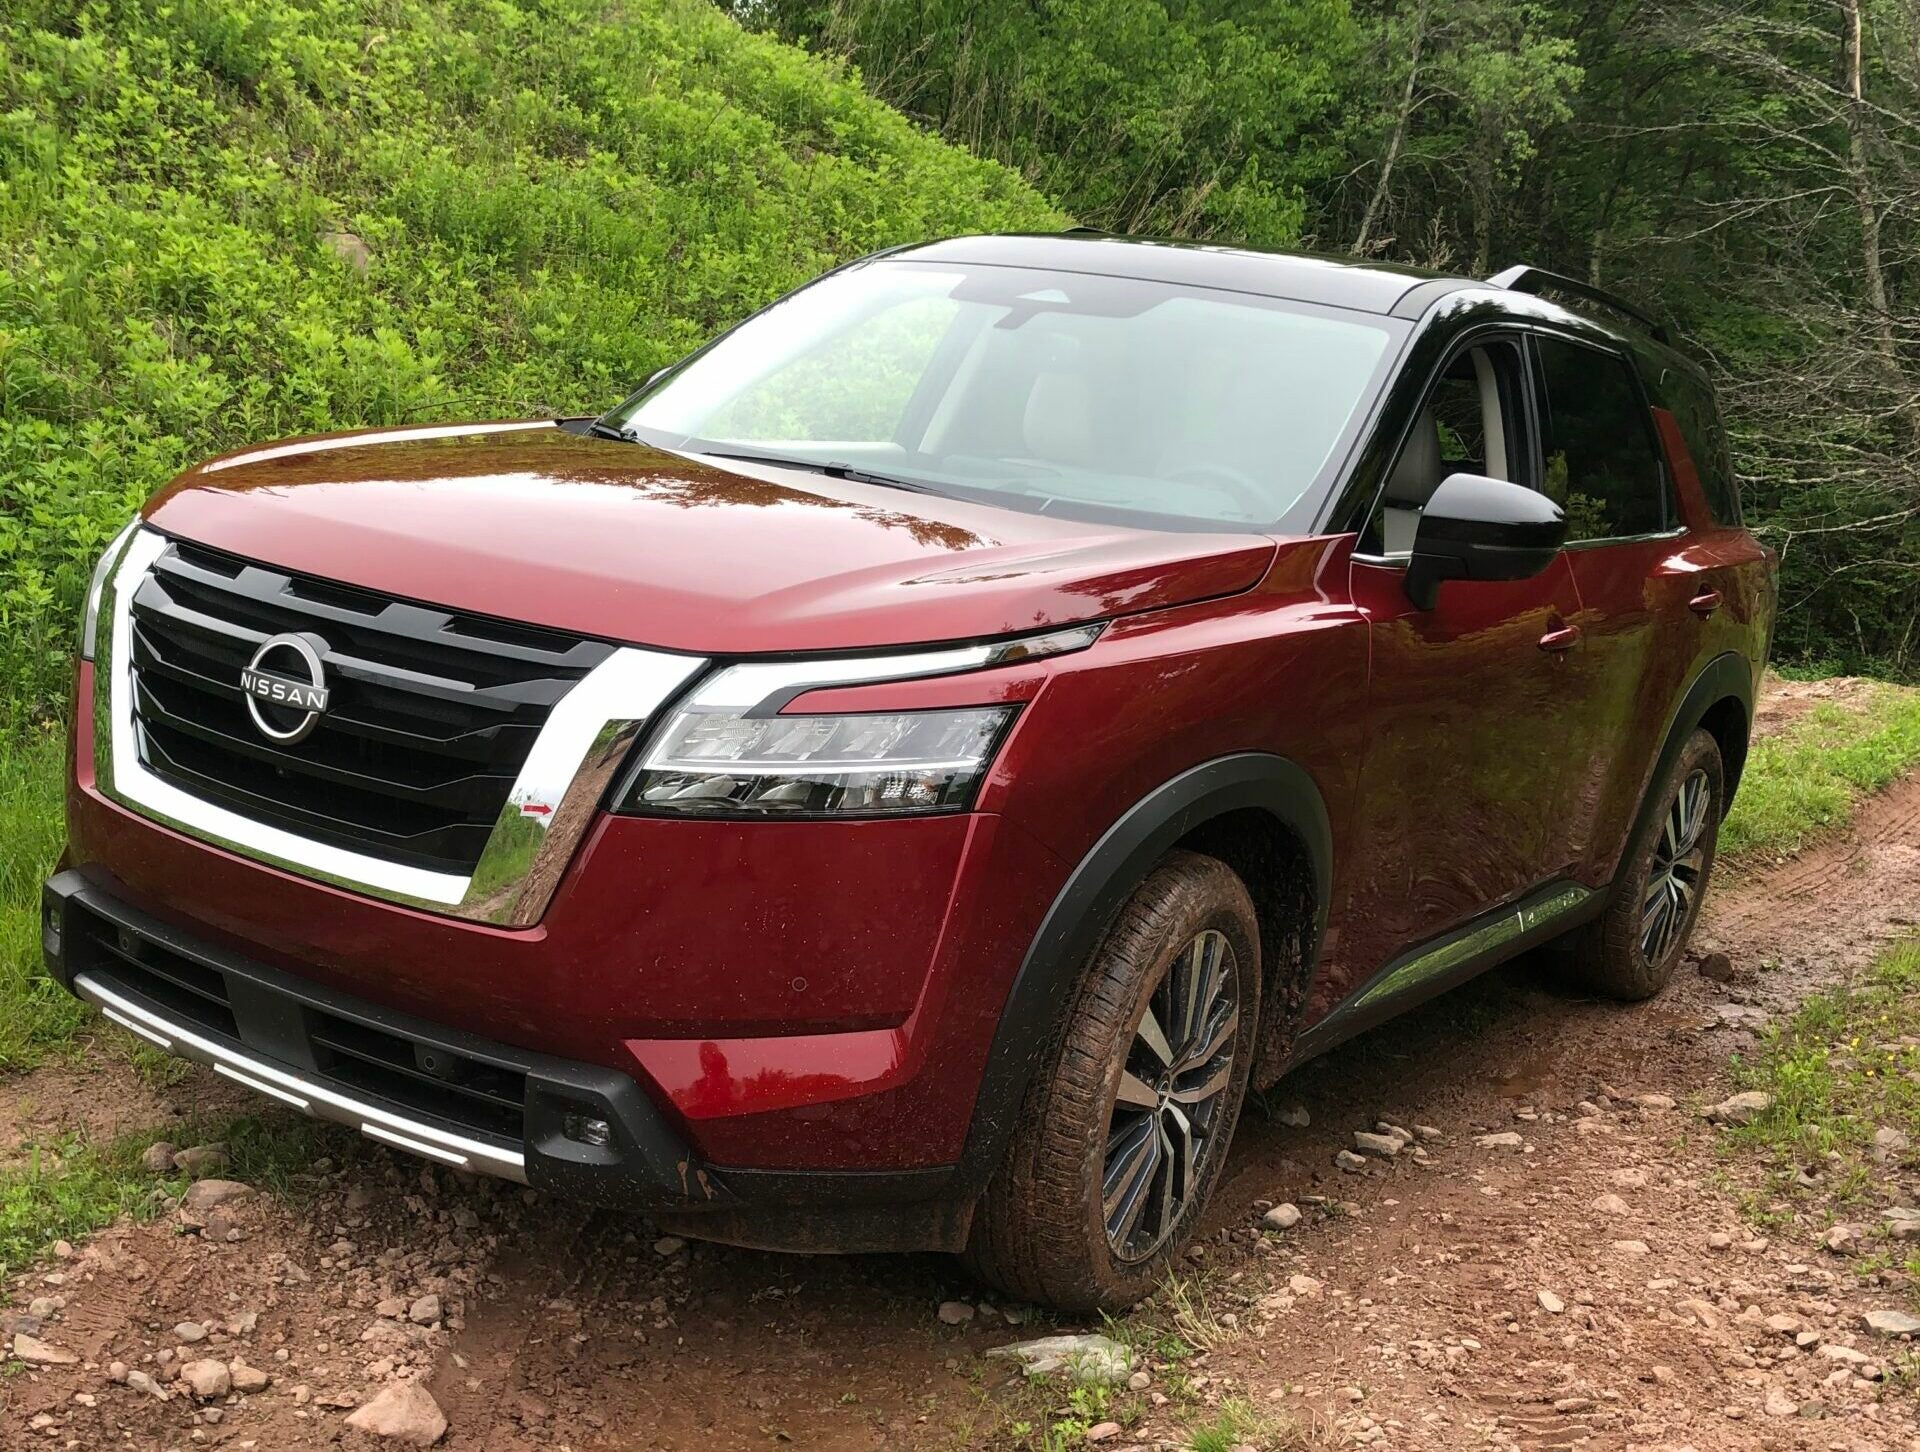 Test-driving the new 2022 Nissan Pathfinder on a truck review.